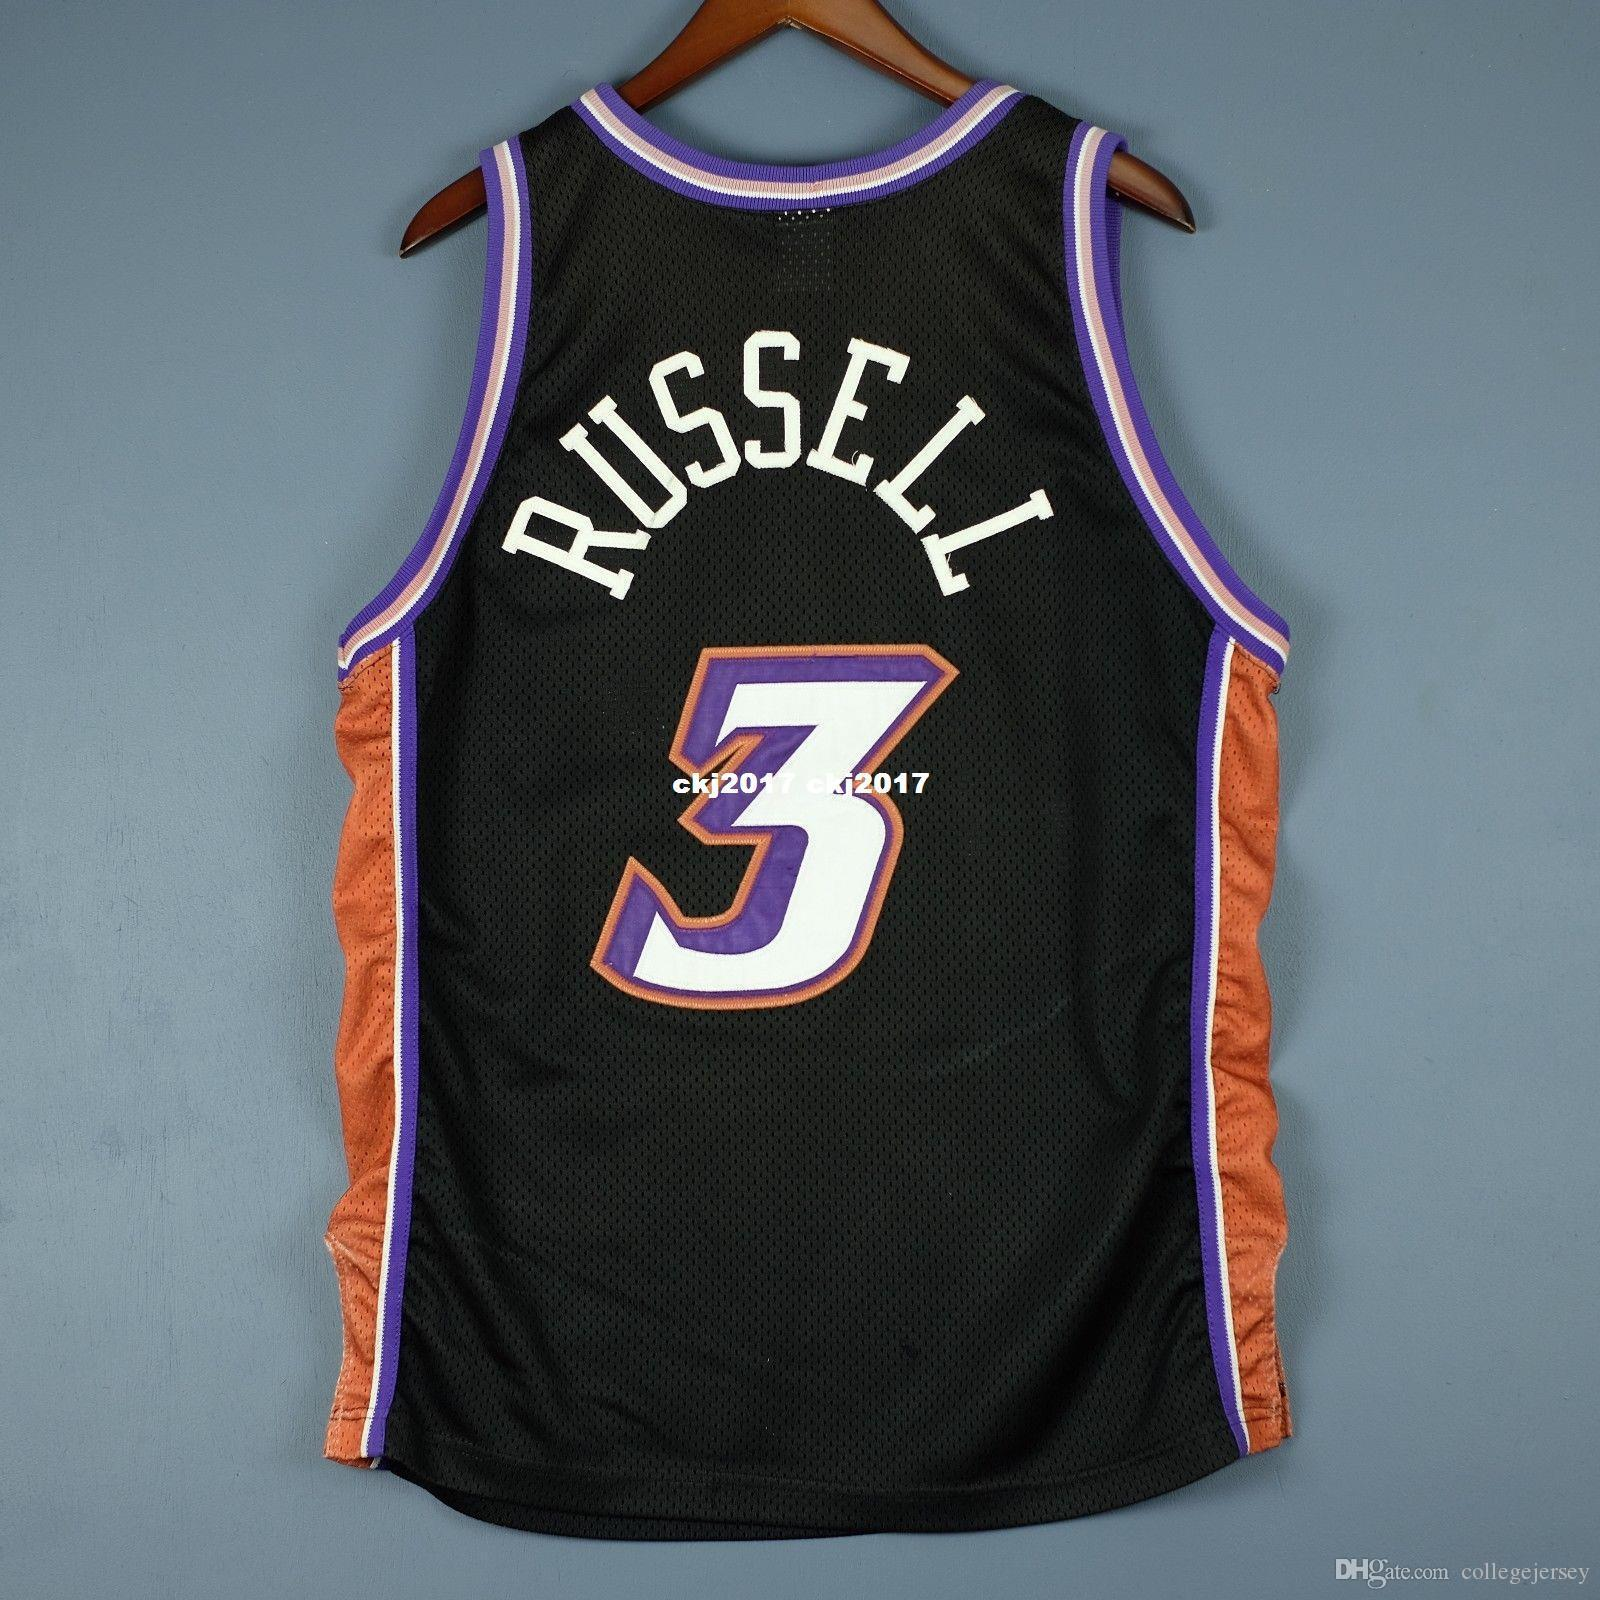 100% cousu # 3 Bryon Russell Champion Cousu Jersey malone stockton gilet taille XS-6XL cousu maillots de basketball Ncaa